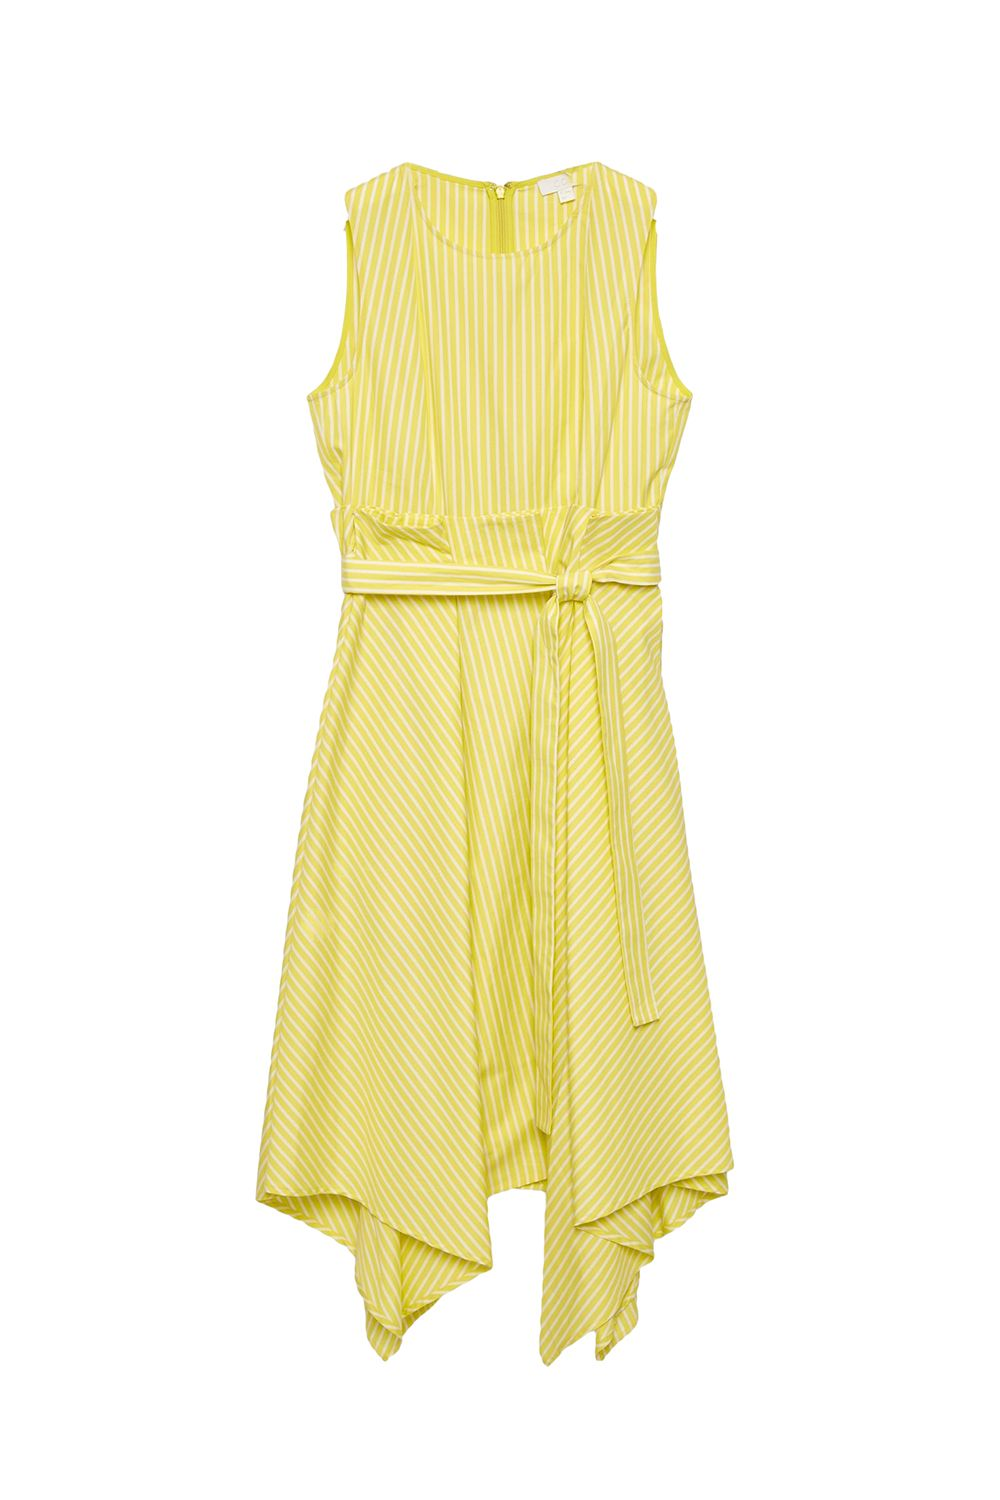 "<p>Don't be a wimp—wear yellow and paper-bag waists and big-ass pleats. (Okay, fine, it comes in black too.) </p><p><em data-redactor-tag=""em"" data-verified=""redactor"">COS, $125</em></p><p><strong data-redactor-tag=""strong"" data-verified=""redactor"">BUY IT: </strong><span class=""redactor-invisible-space"" data-verified=""redactor"" data-redactor-tag=""span"" data-redactor-class=""redactor-invisible-space""><strong data-redactor-tag=""strong"" data-verified=""redactor""><a href=""http://www.cosstores.com/us/Women/Dresses/Sleeveless_dress_with_pleated_waist/46881-27923937.1#c-15133319"" target=""_blank"" data-tracking-id=""recirc-text-link"">cosstores.com</a>.</strong></span></p>"